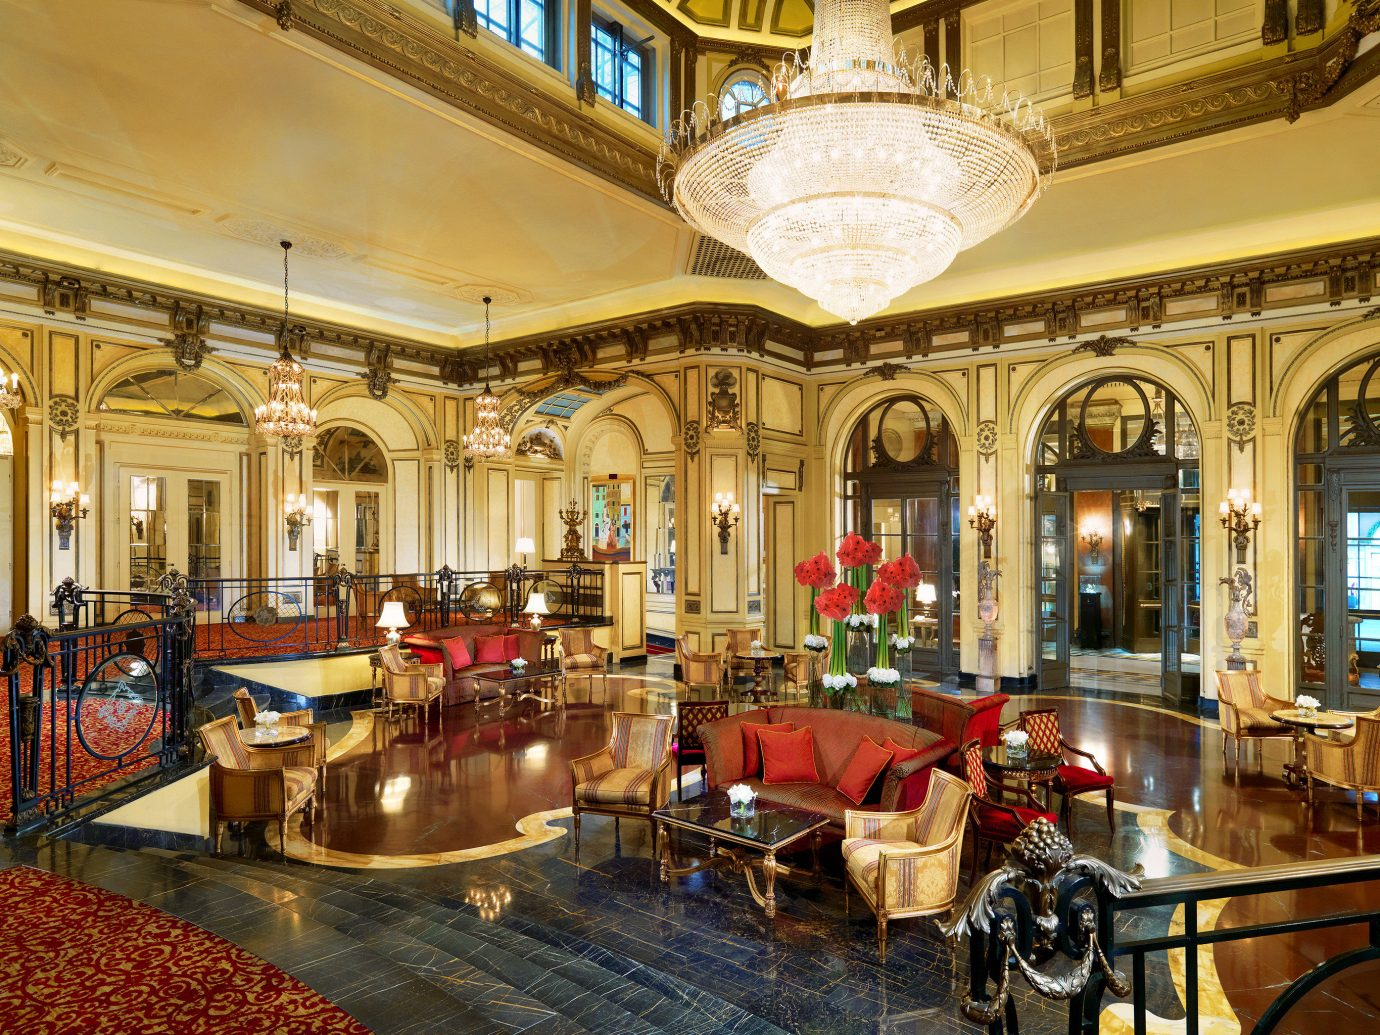 Boutique Hotels City Italy Lobby Luxury Luxury Travel Romantic Romantic Hotels Rome indoor ceiling building palace estate interior design restaurant synagogue furniture several dining room